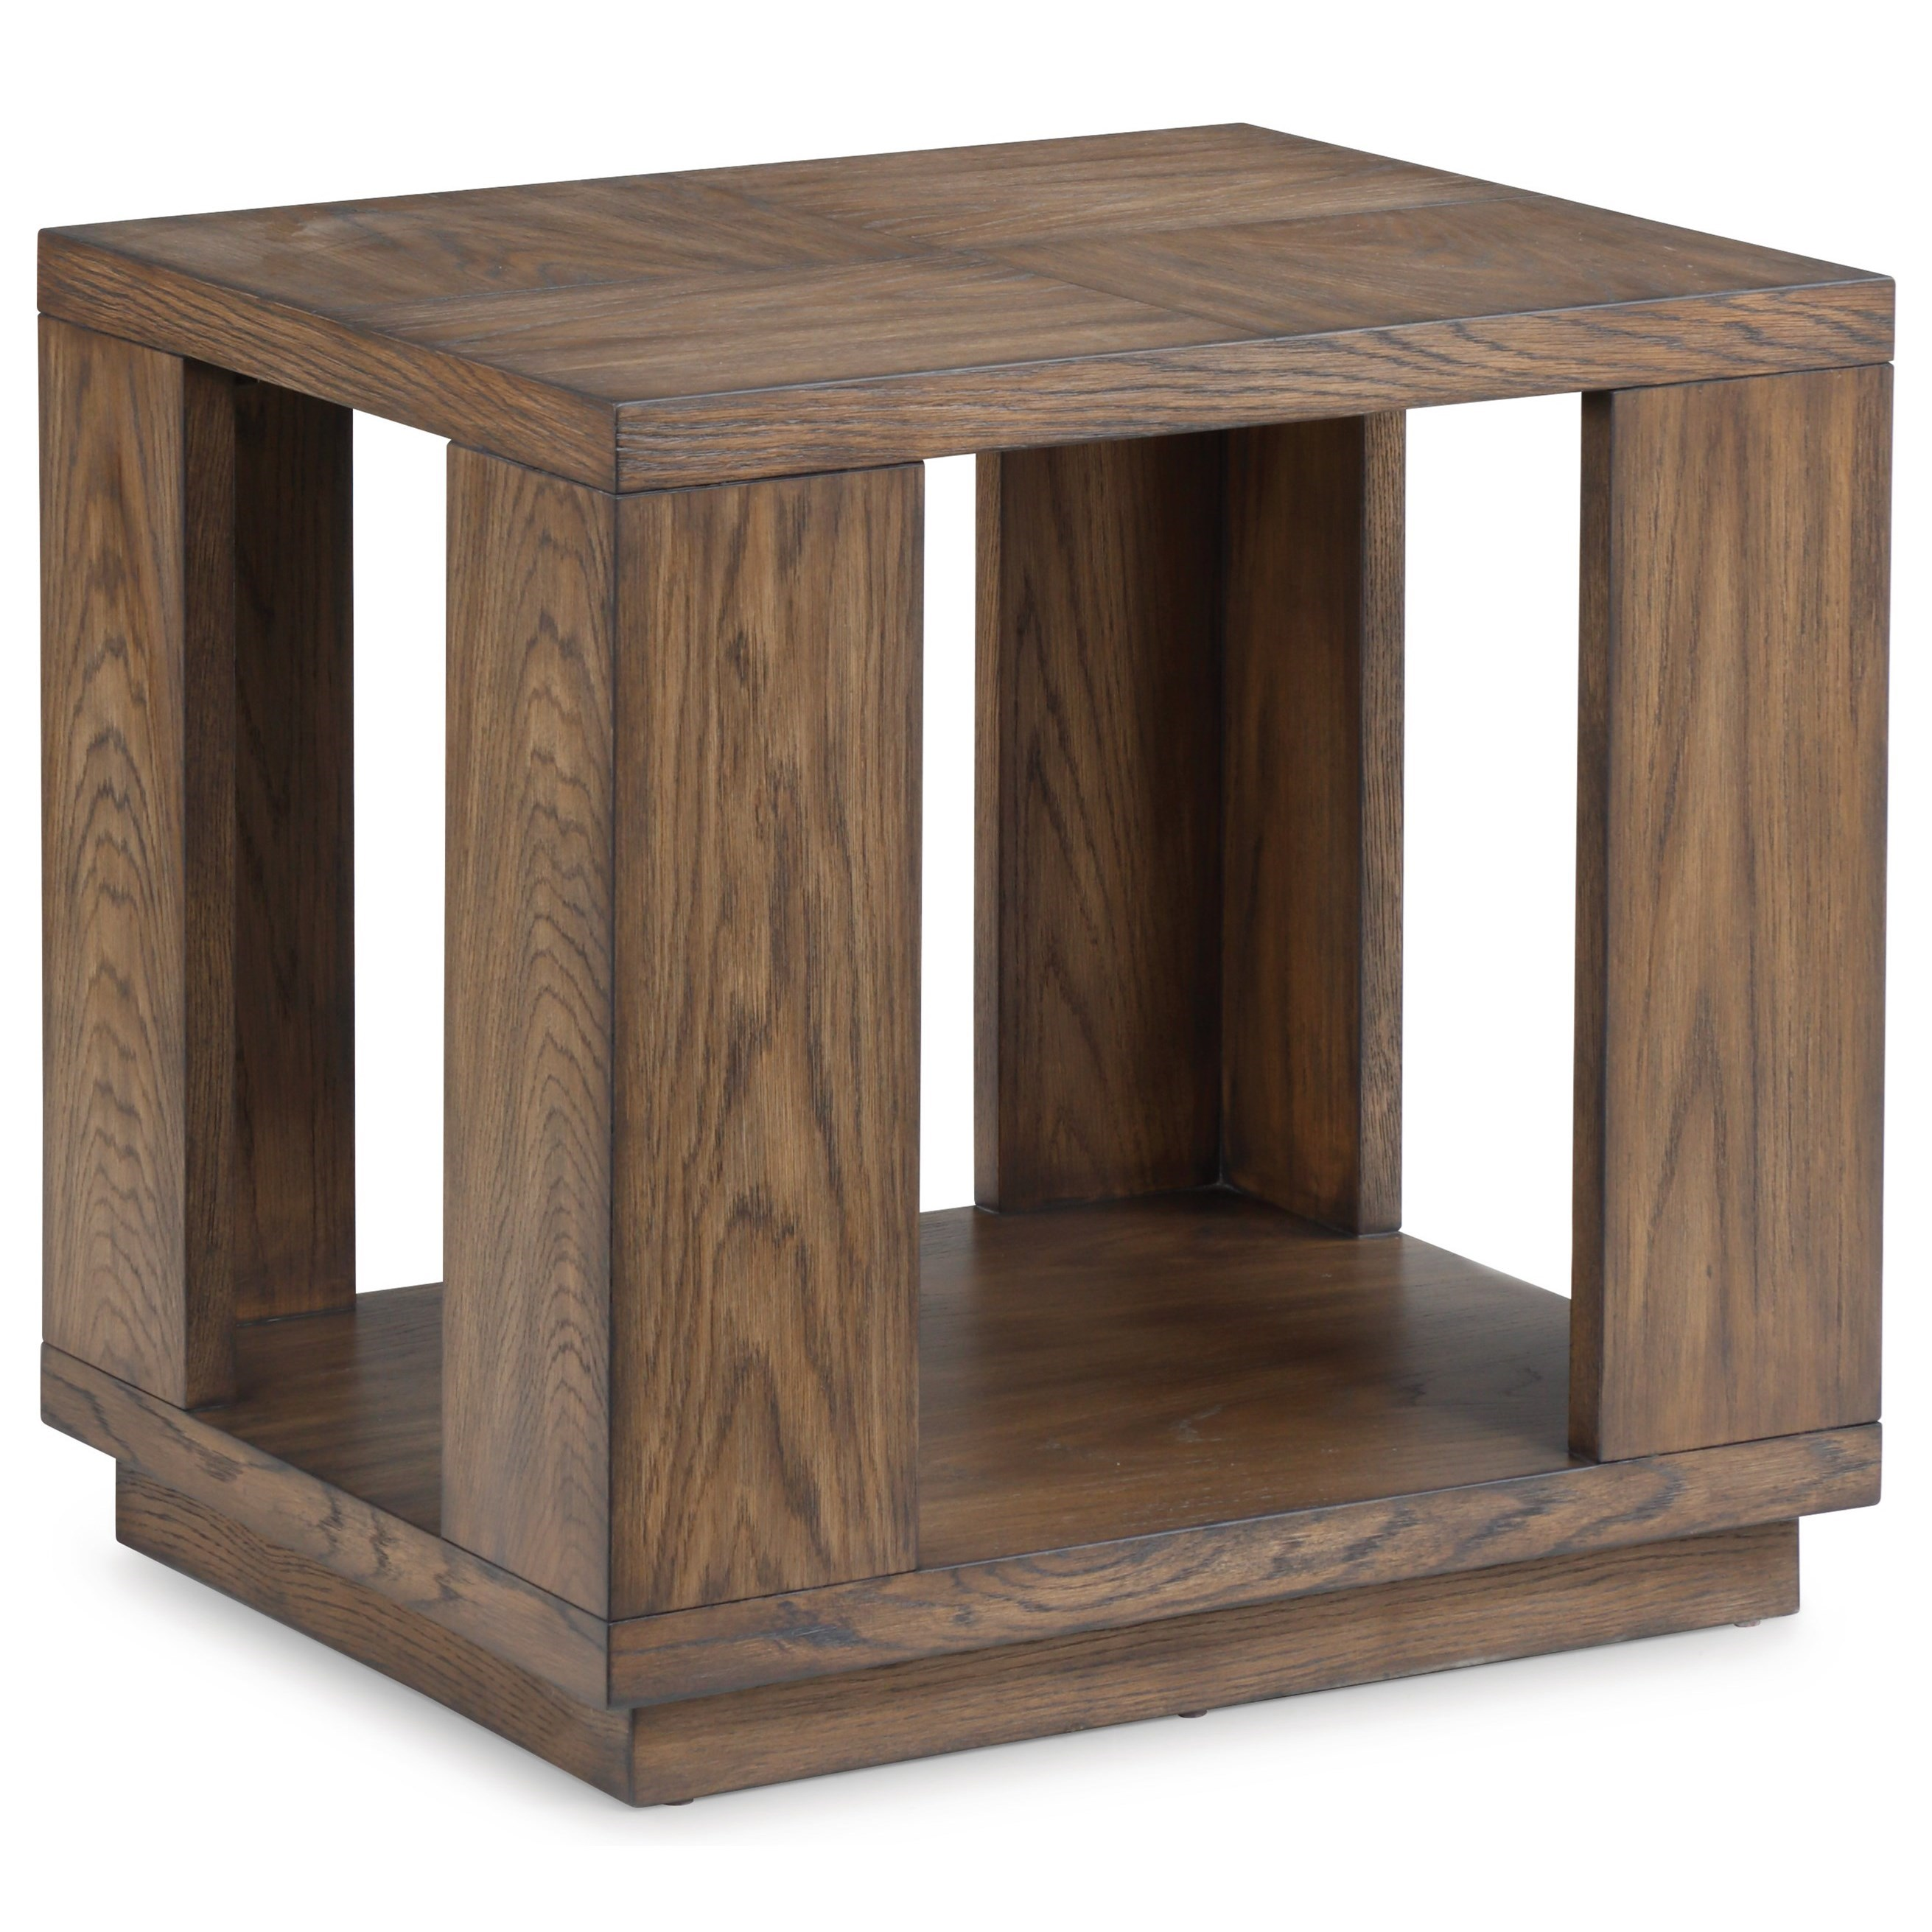 Mallory Mallory End Table by Flexsteel Wynwood Collection at Morris Home